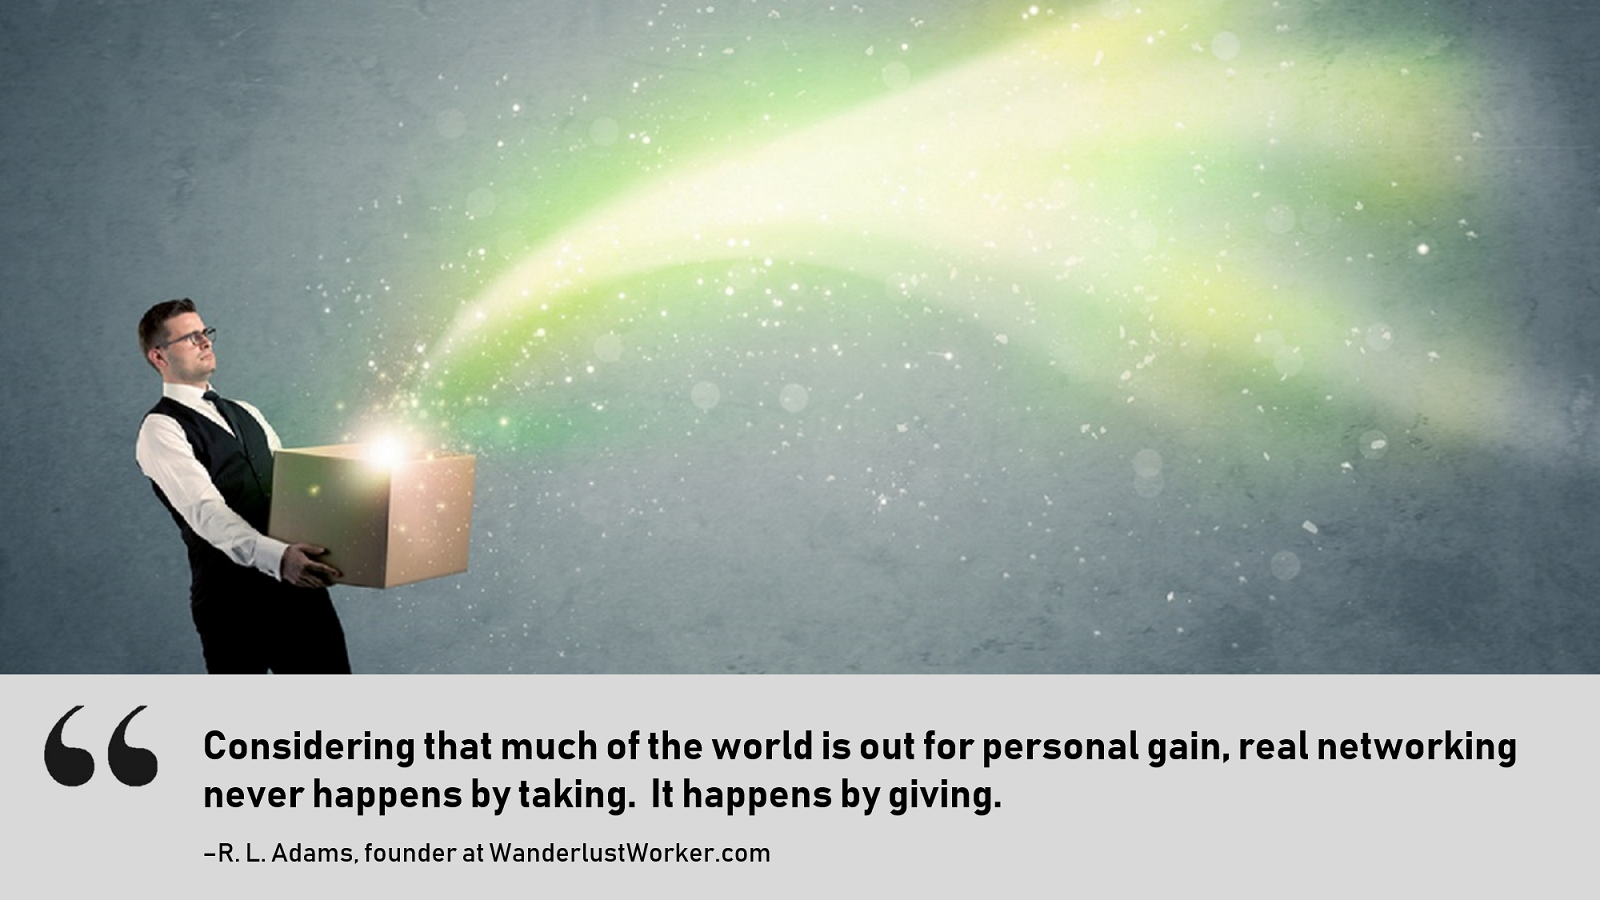 Real networking happens by giving.